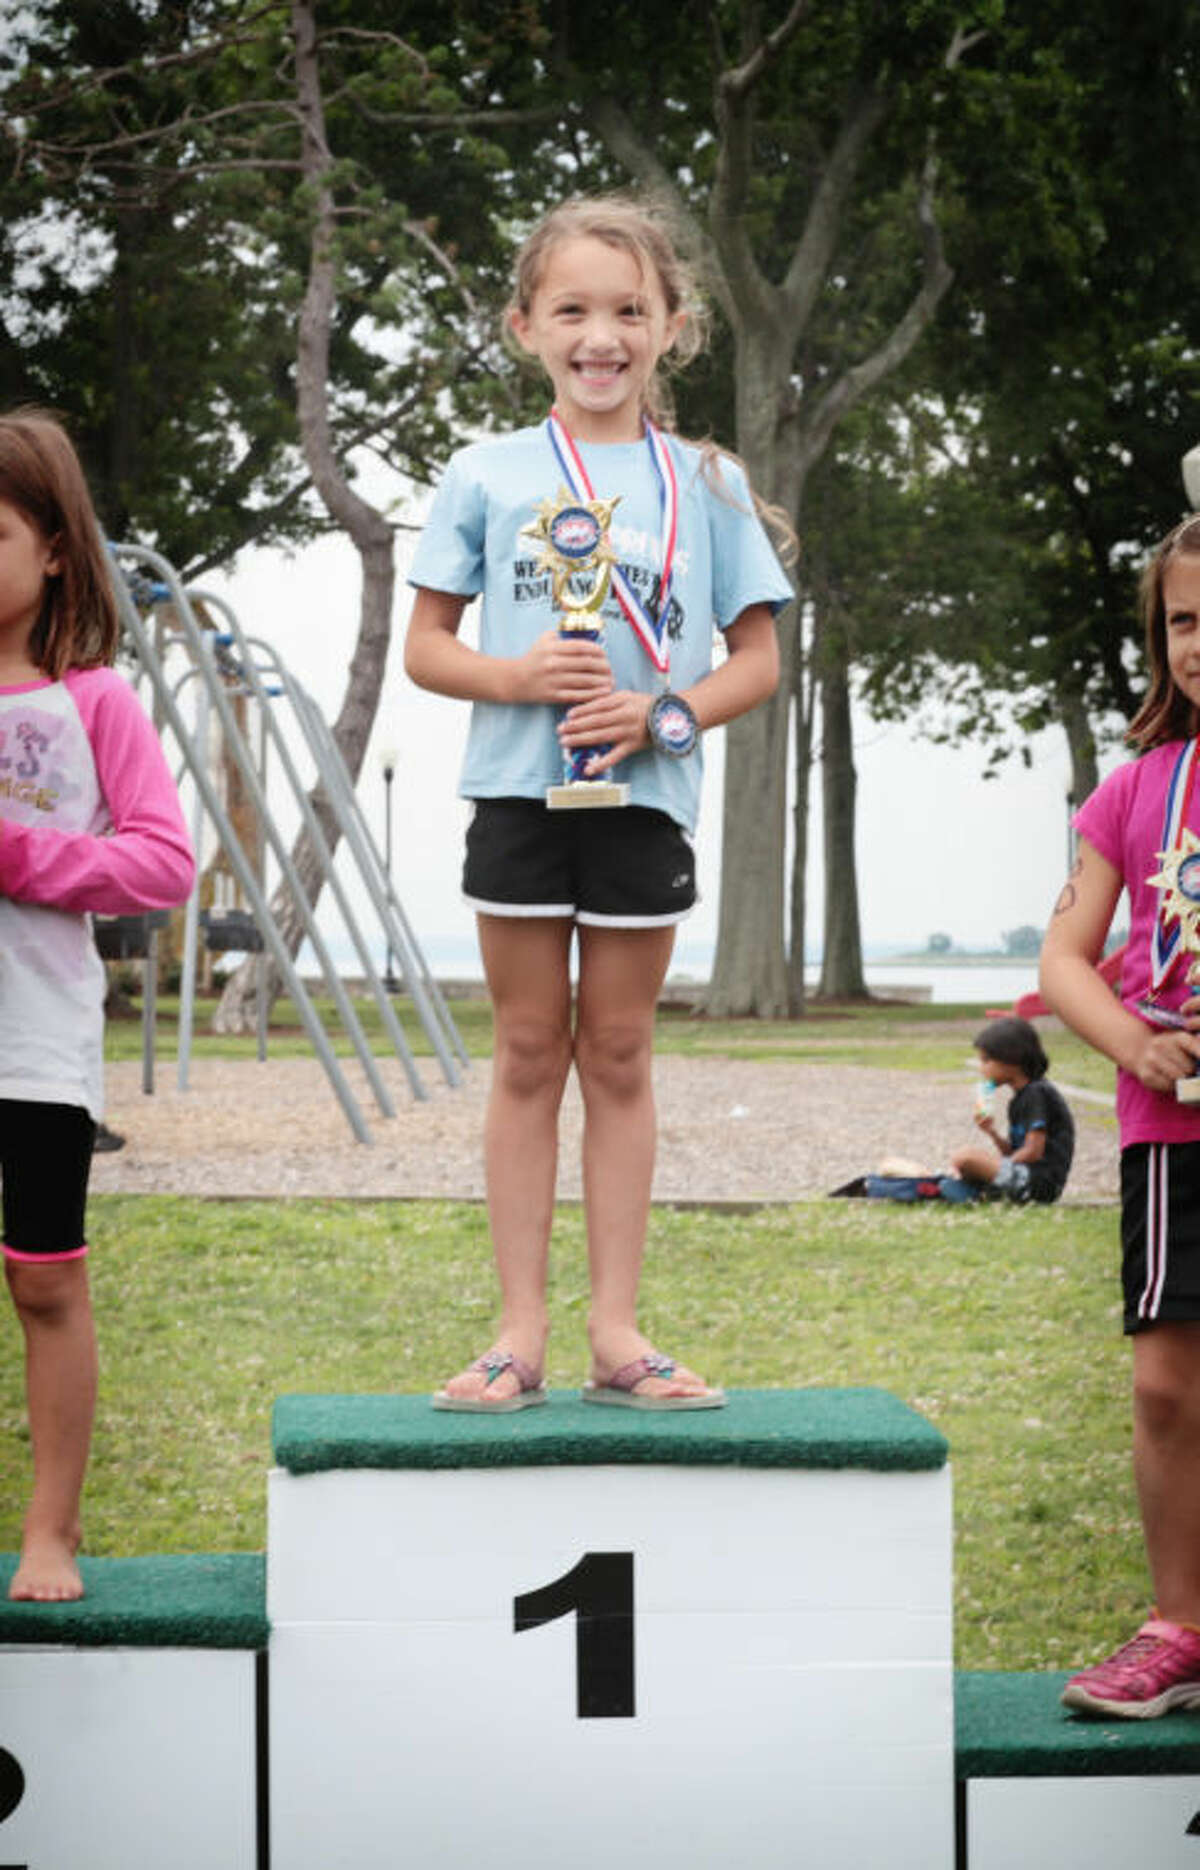 Contributed photo 6-year-old Paige Whipple of Norwalk, took part in the Mini Mossman Youth Triathlon Sunday at Calf Pasture Beach. Paige took 1st place girl in the 4-6 year old category.